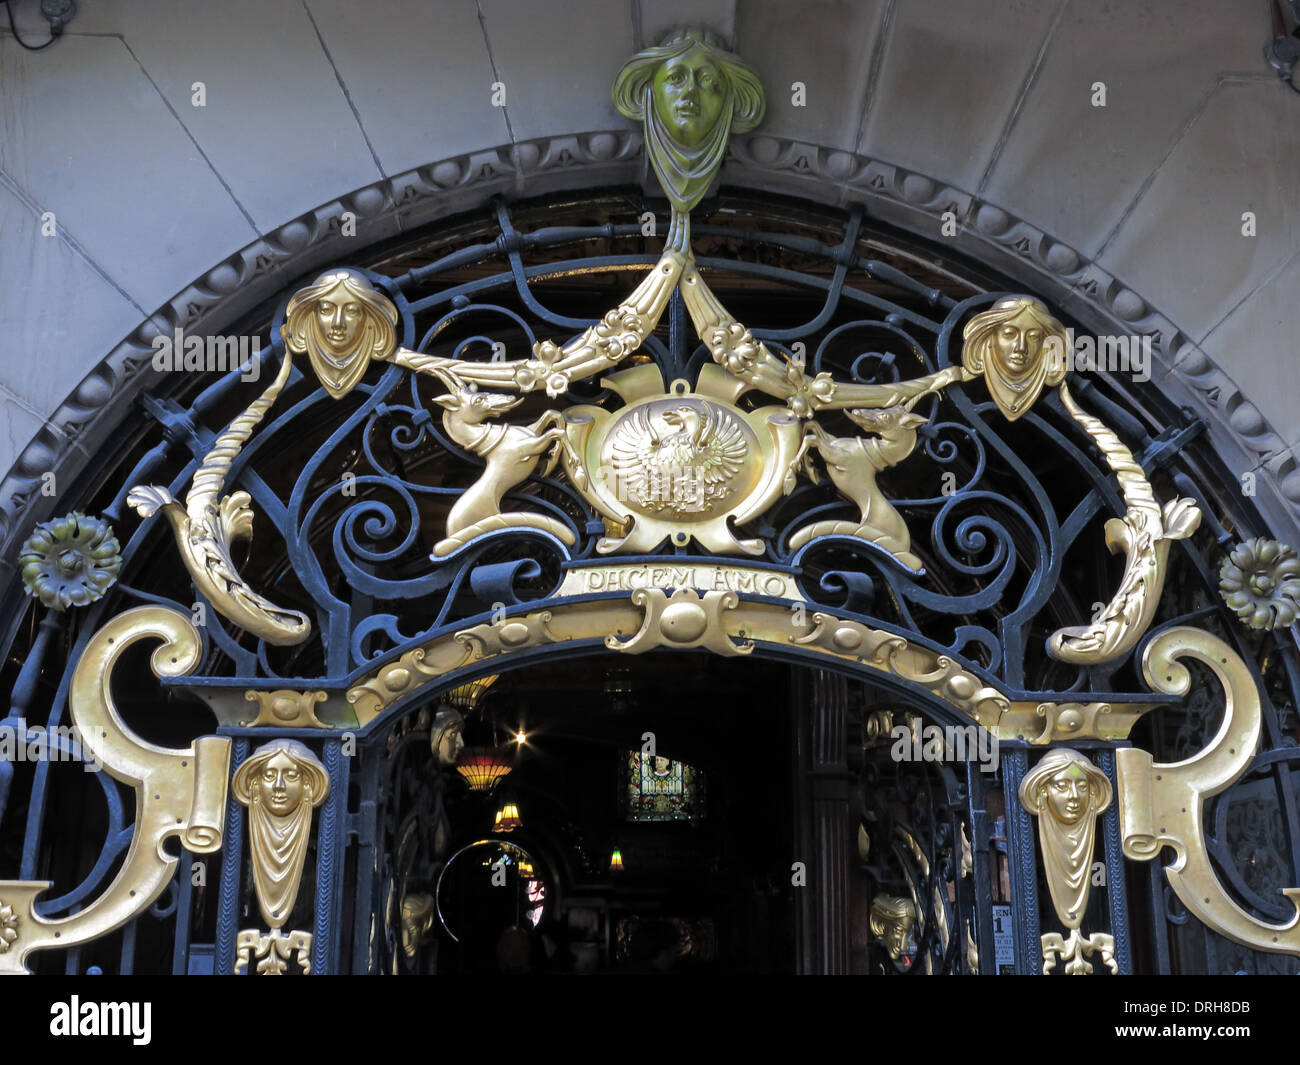 Golden entrance art at the Philharmonic Dining Rooms Hardman/Hope St Liverpool, England United Kingdom - Stock Image